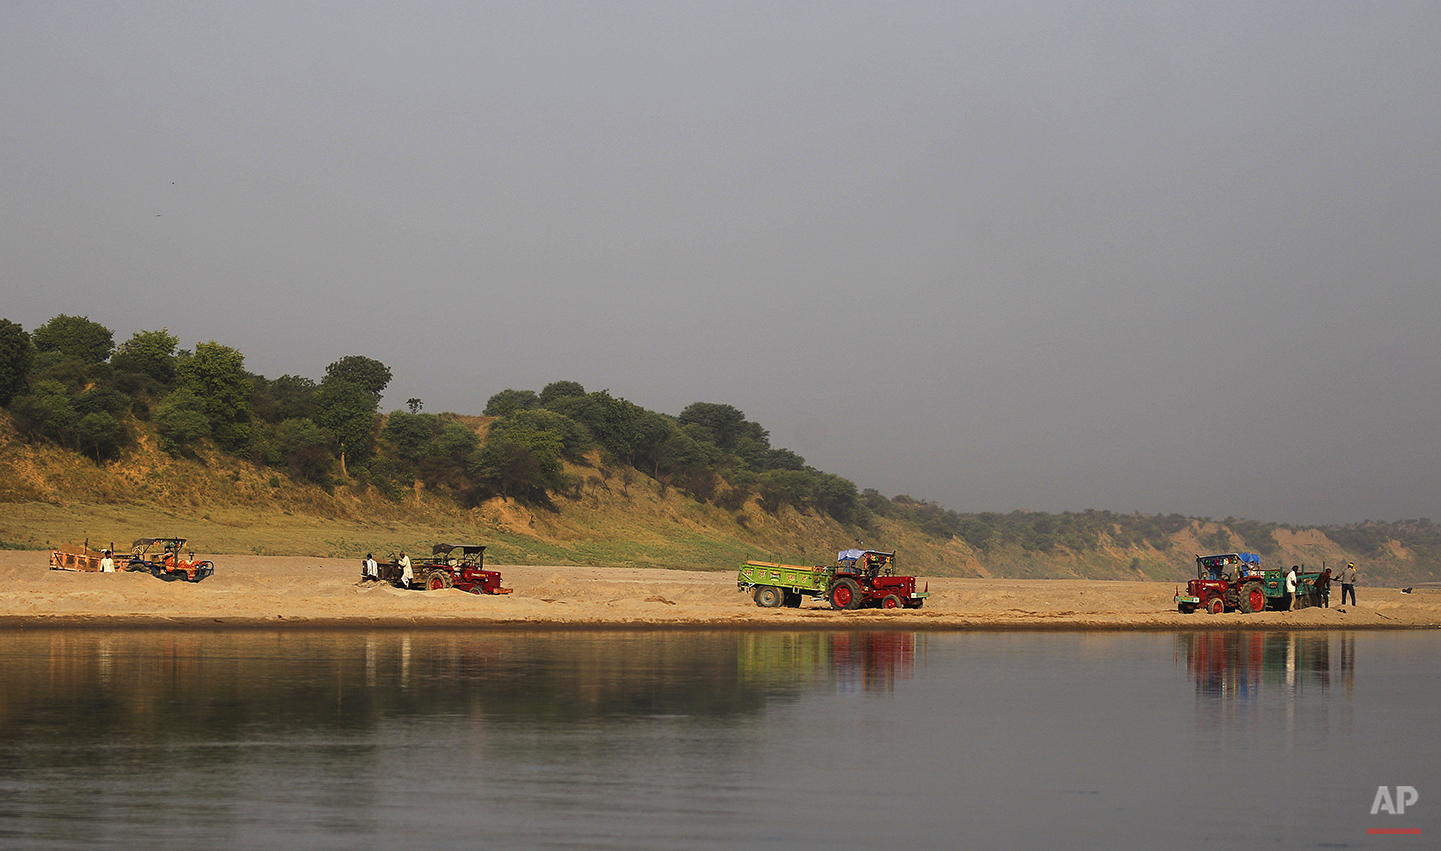 In this photo taken Tuesday, April 29, 2014, laborers load sand onto tractor trolleys on the banks of the Chambal River near Bhopepura village in the northern Indian state of Uttar Pradesh. The most immediate worry to this narrow 250-mile stretch of the Chambal sanctuary is illegal sand mining, which can strip away thousands of tons of riverbank on a single day, causing immense amounts of silt to spill into the river, upsetting its delicate ecology. Dozens of tractors regularly snake down a dirt road to the river, pulling trailers filled with wiry, shovel-wielding men who can earn $15 for a long, exhausting day of work. (AP Photo/Altaf Qadri)